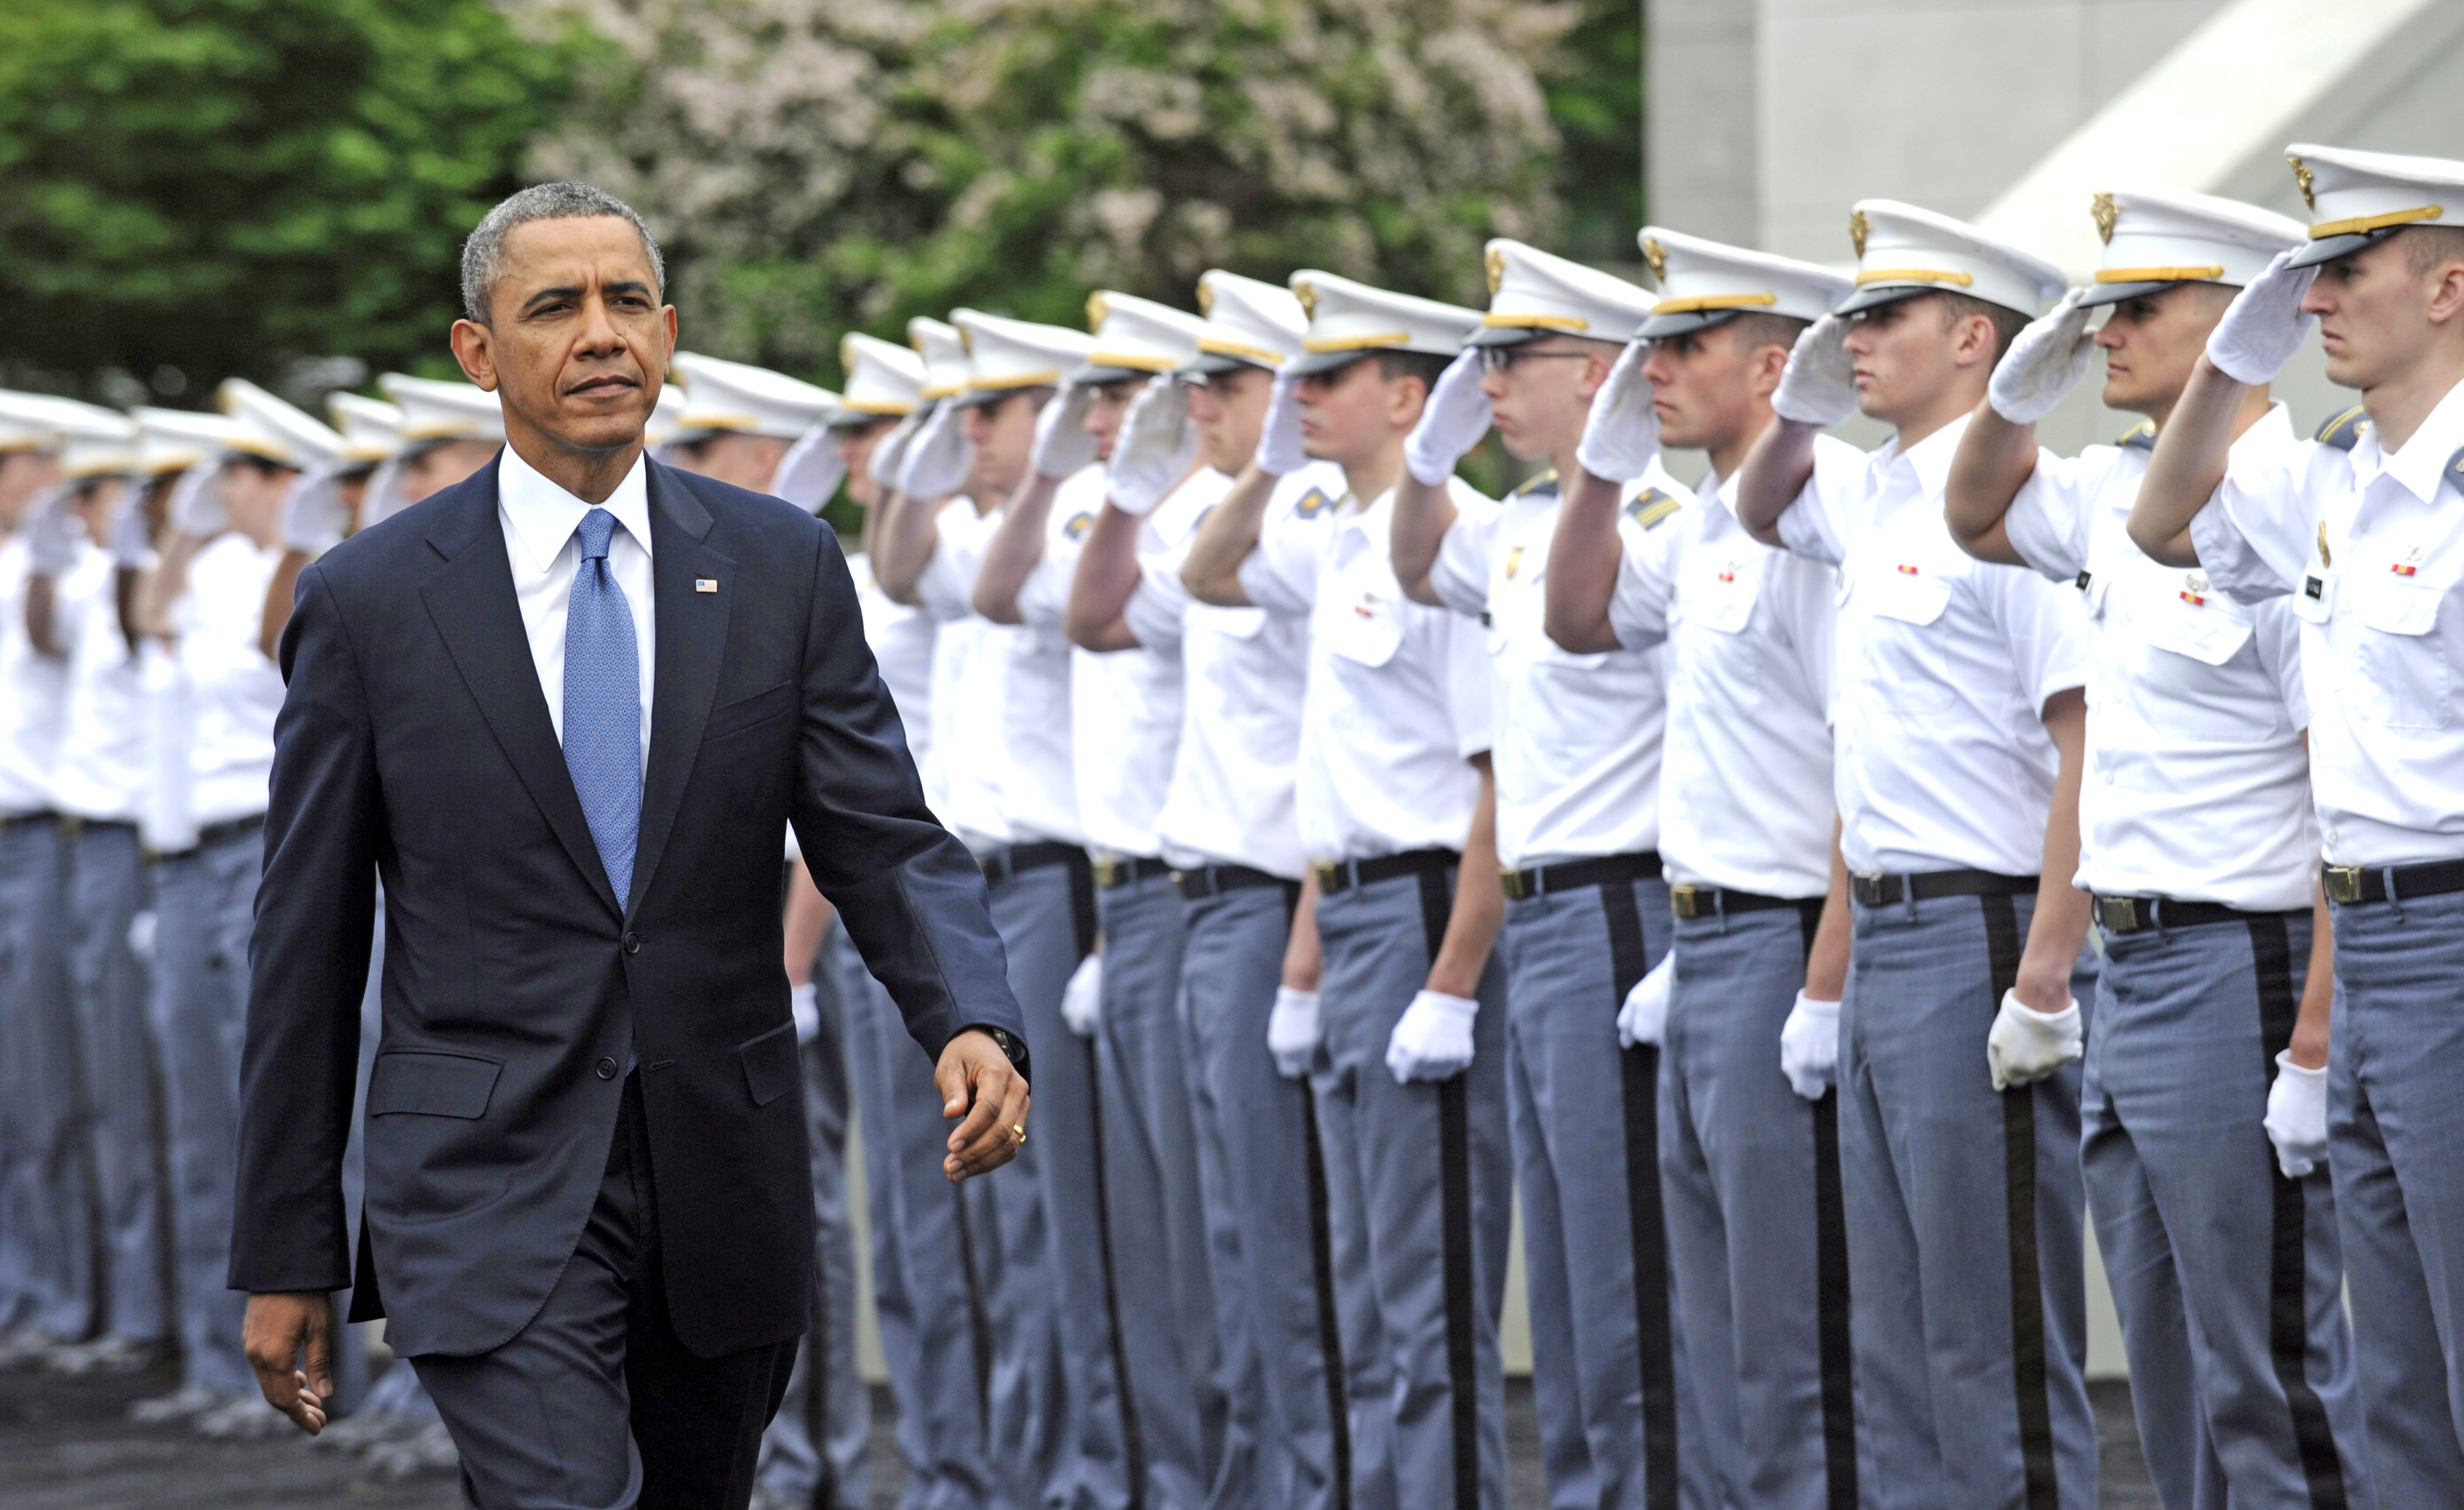 U.S. President Barack Obama arrives to deliver the commencement address to the U.S. Military Academy at West Point's Class of 2014 on May 28, 2014, in West Point, N.Y.